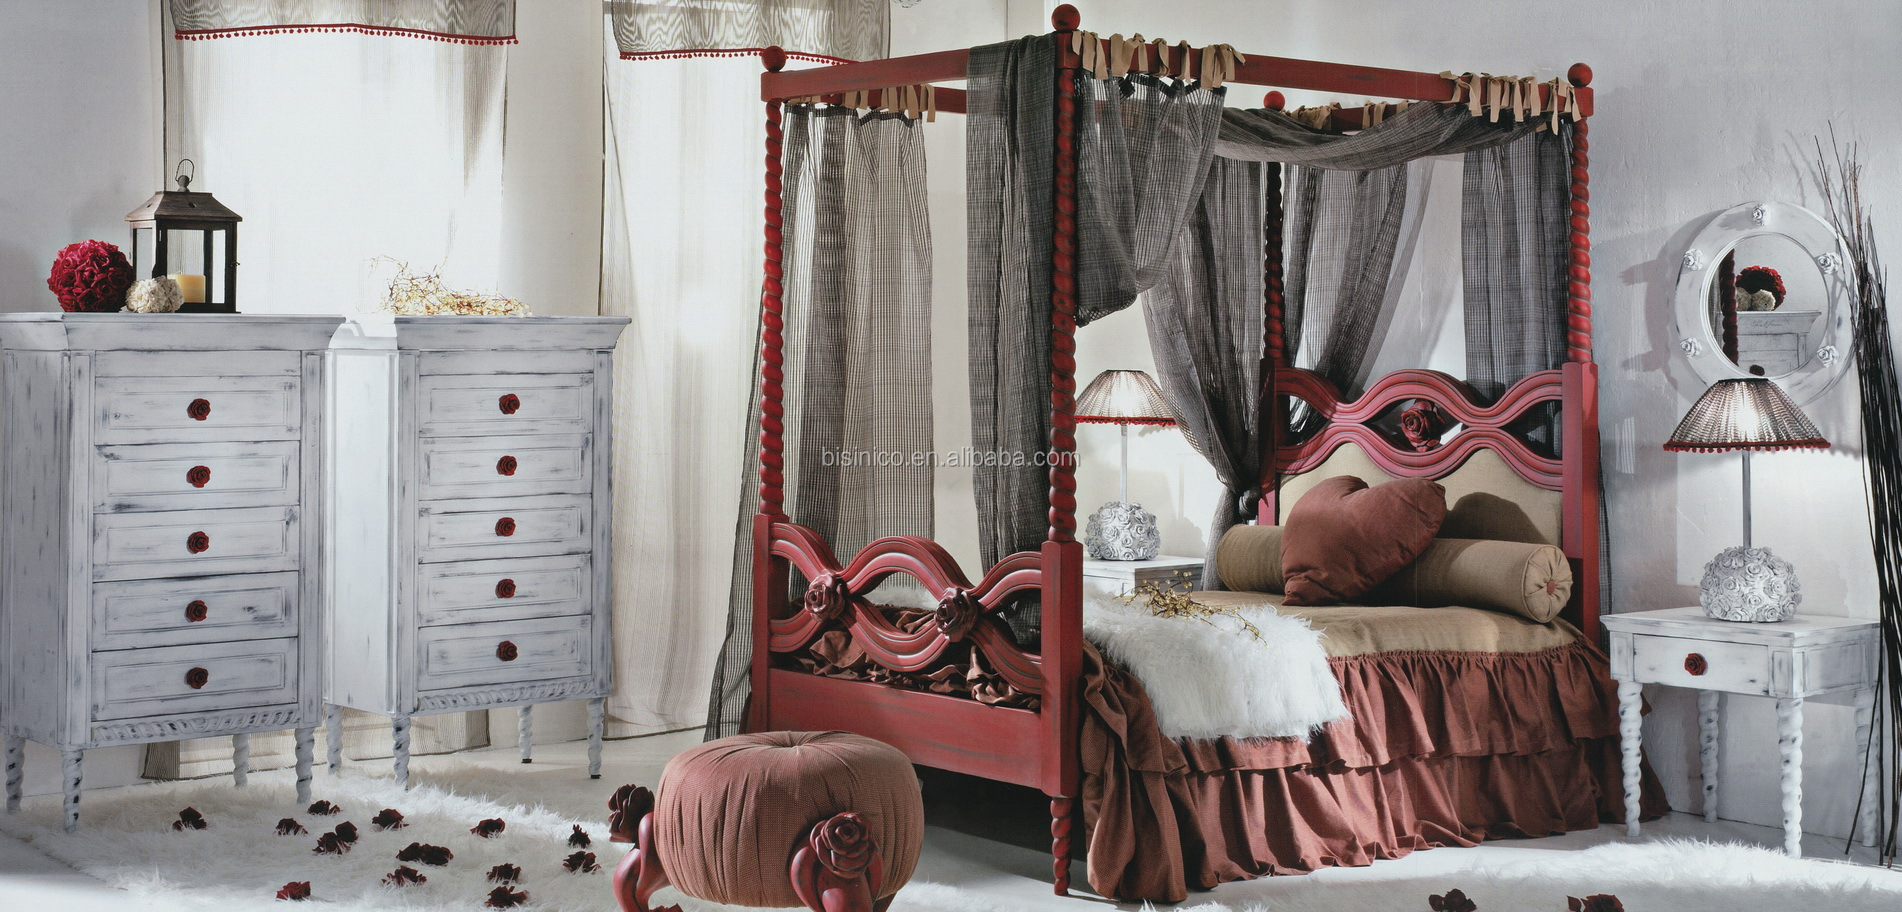 Red And White Roses Decorated Wood Engraved Canopy Bed Furniture Vintage Antique Bedroom Set Buy Antique White And Red Distressed Bedroom Furniture Roses Decorated Bedroom Set Wood Engraved Canopy Bedroom Set Product On Alibaba Com